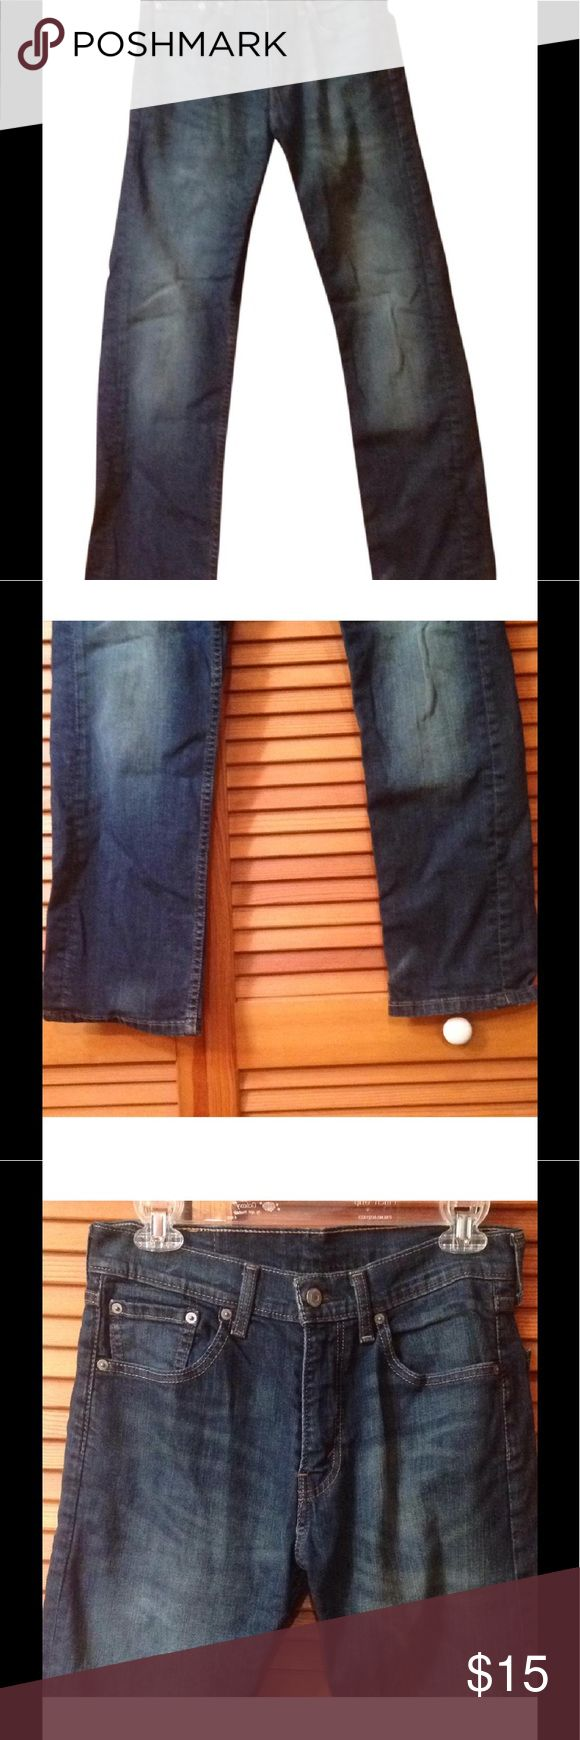 Classic Levi's 505 jeans Classic old school Levi 505 jeans. Straight leg. Would make great cut-offs for summer. Size 29x30 Levi's Jeans Straight Leg